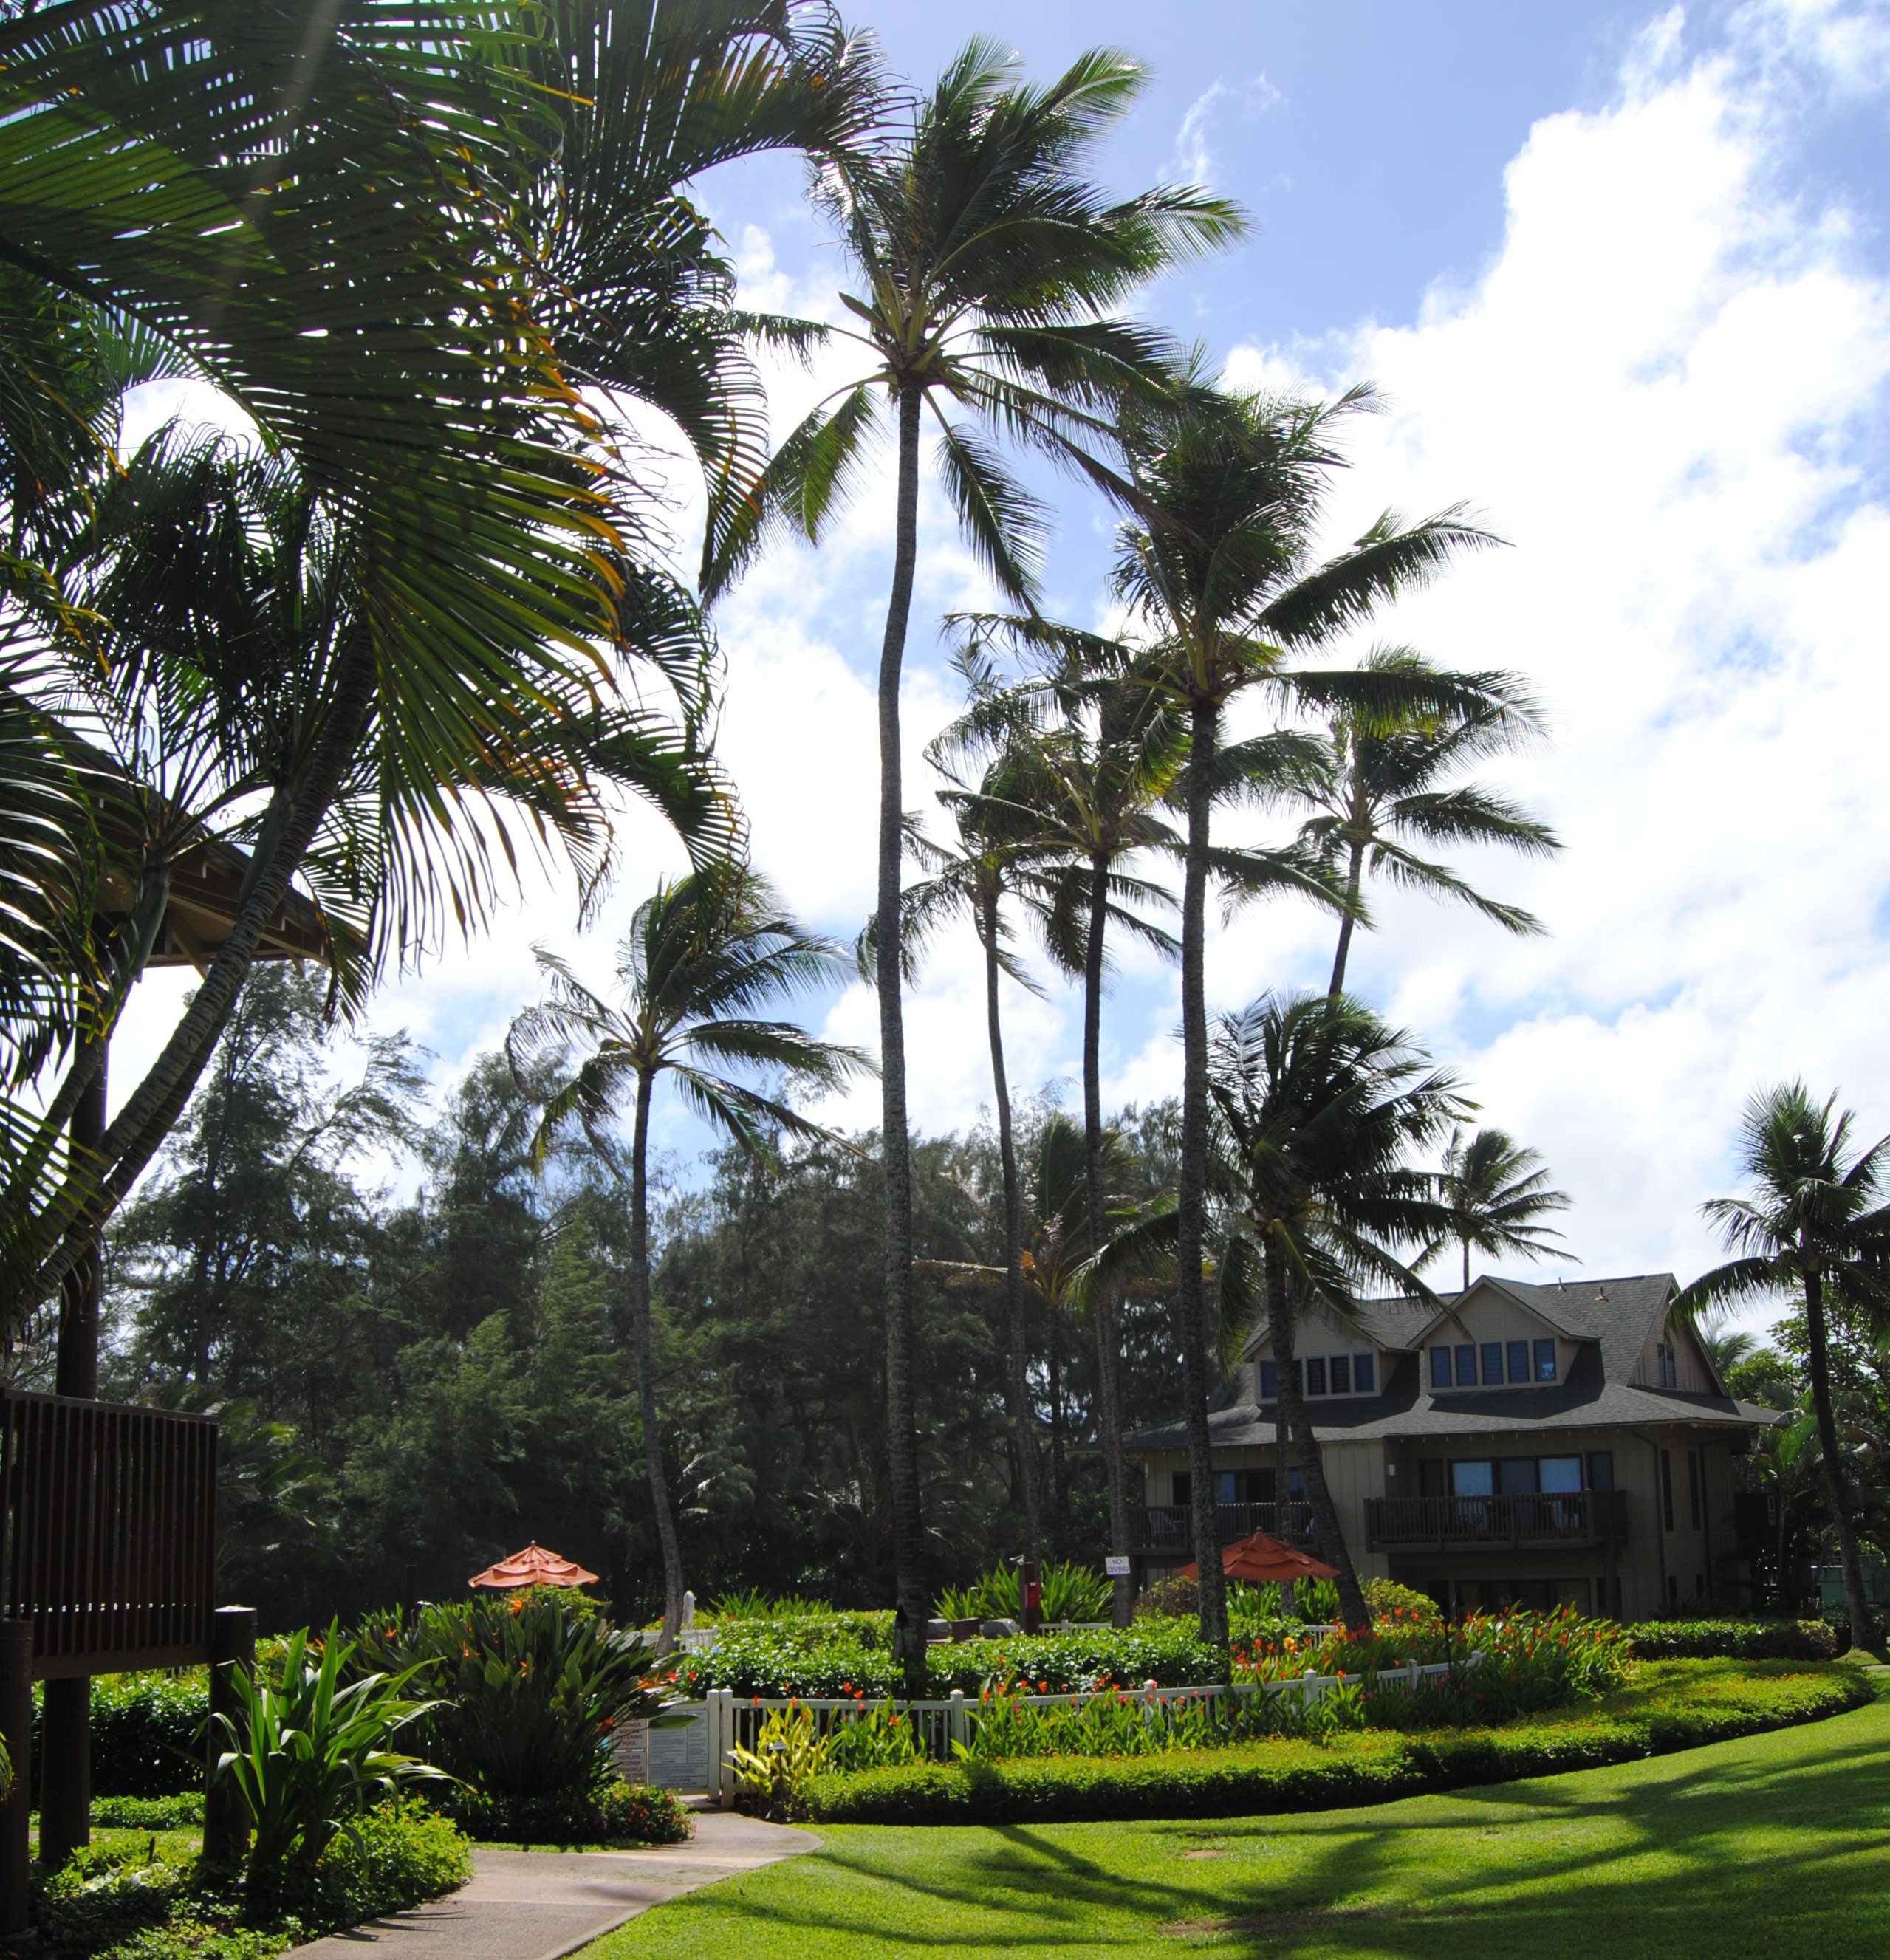 Kaha Lani Resort — Preserving The Beauty Of A Windward Resort